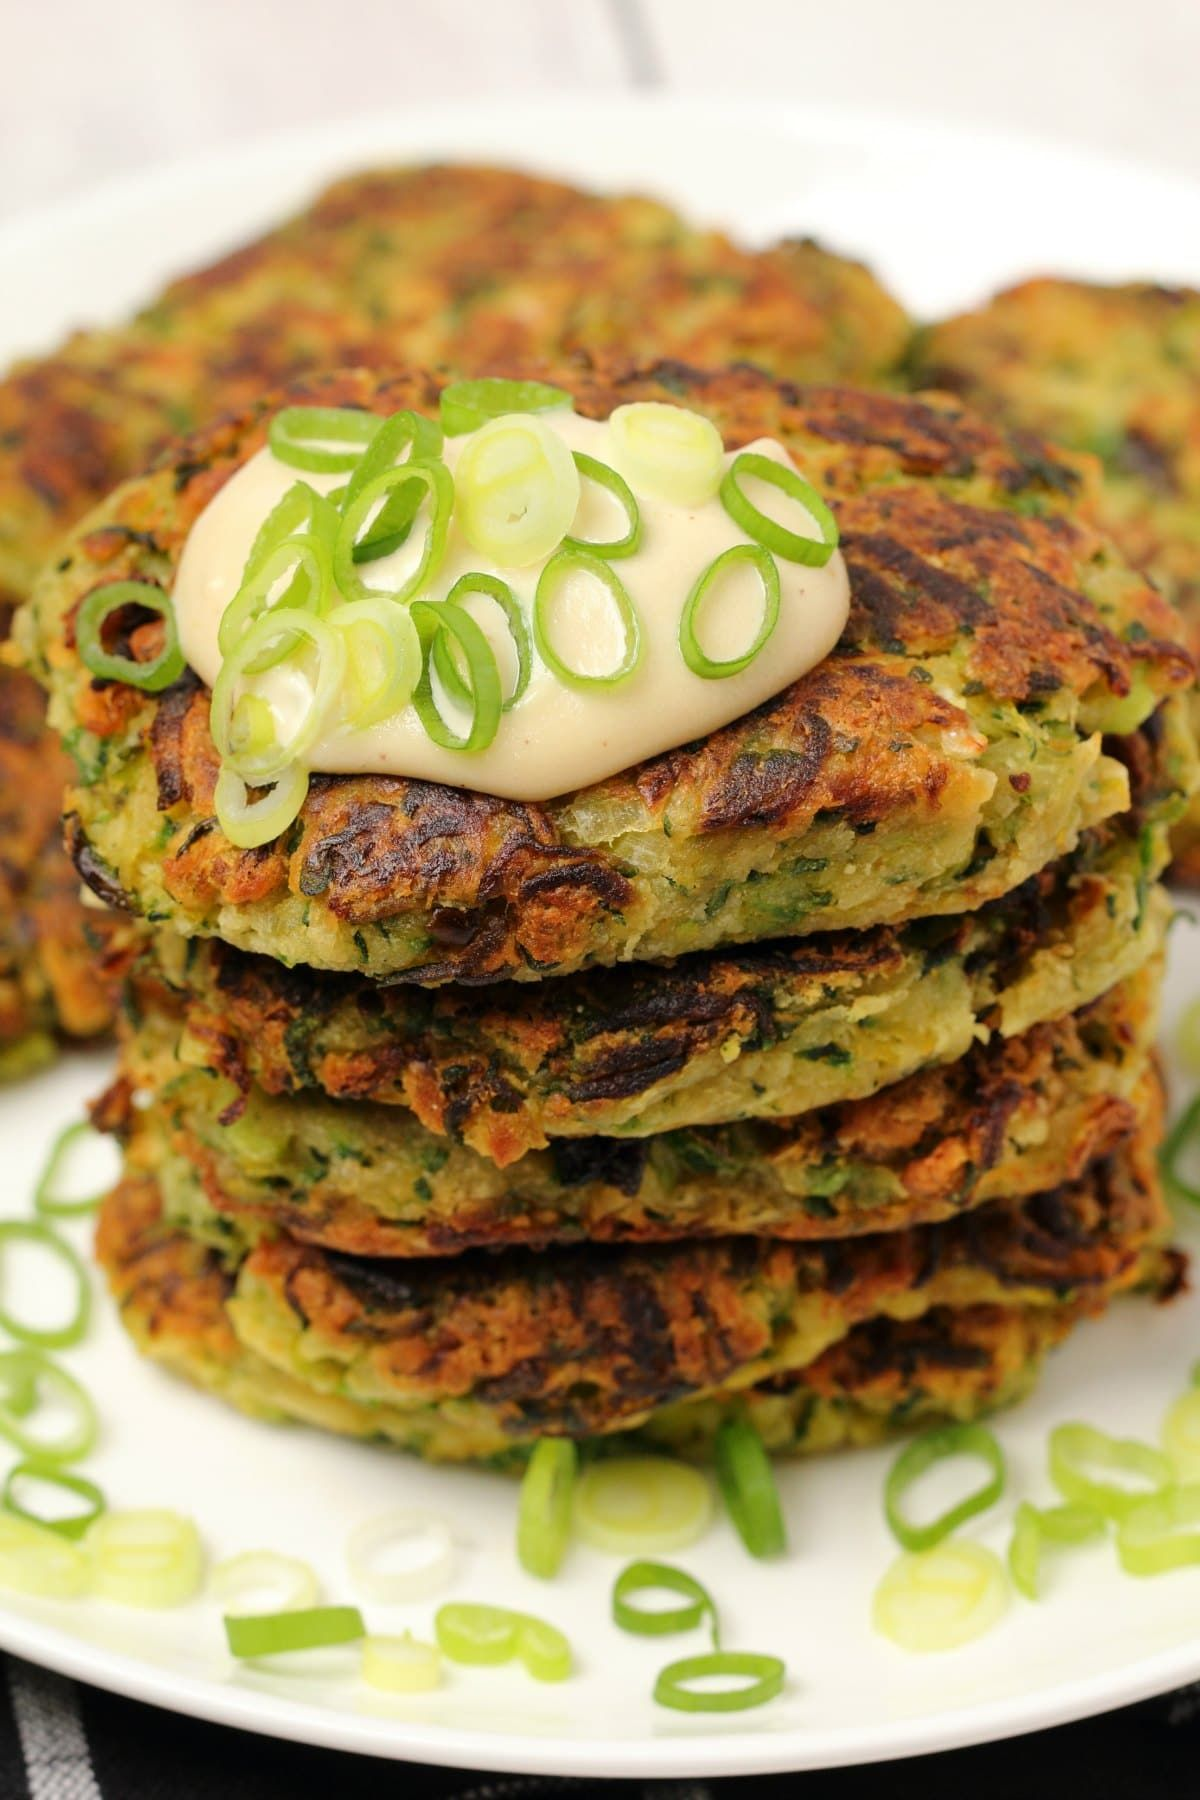 Vegan Oil Free Zucchini Fritters 8 Ingredients The Vegan 8 Recipe Zucchini Fritters Oil Free Vegan Fritter Recipes